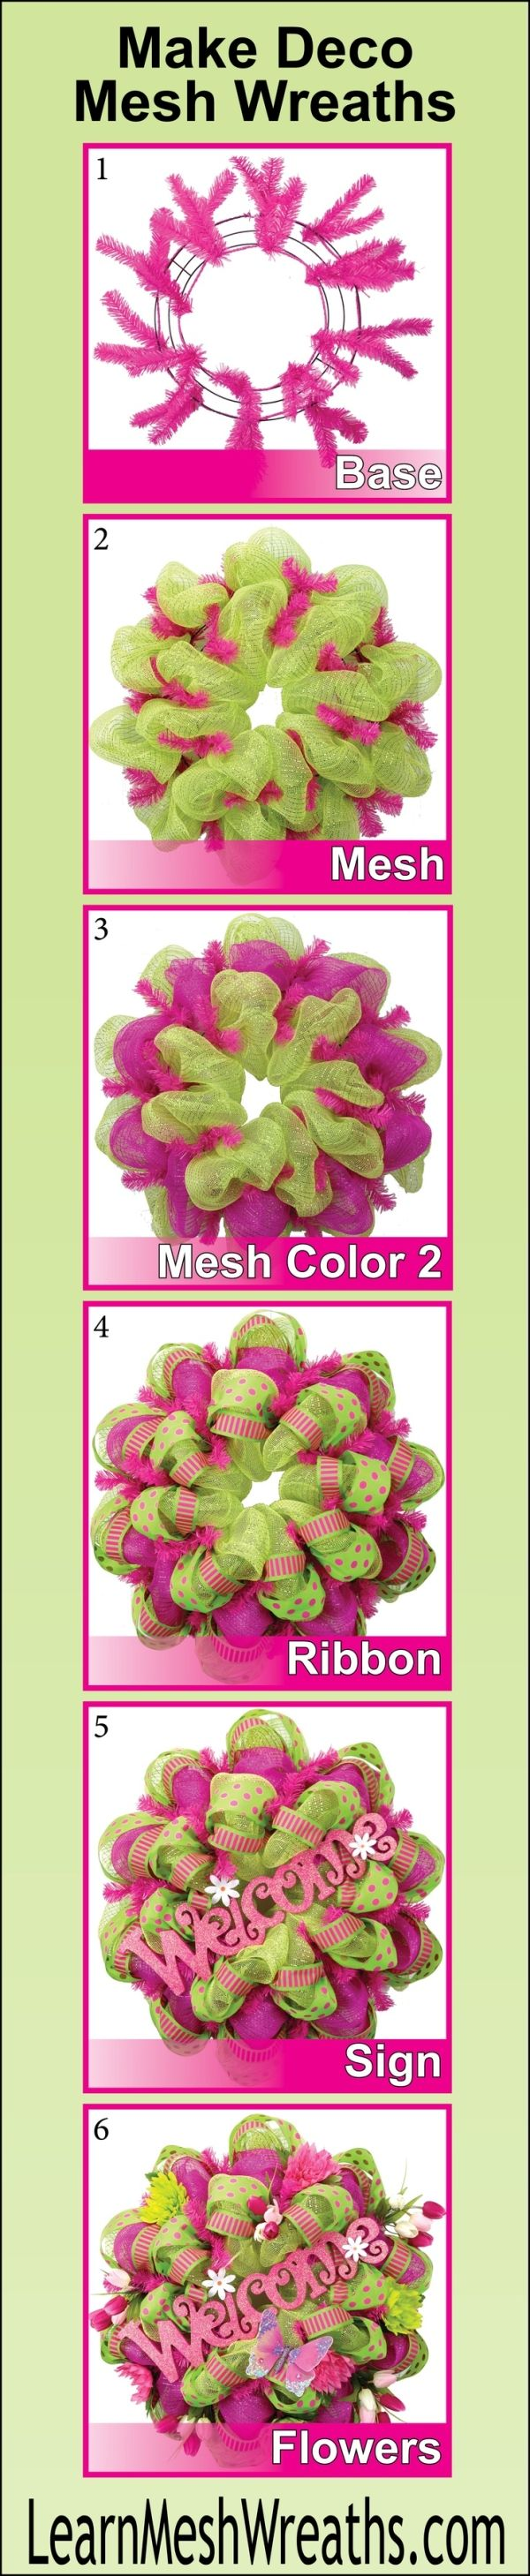 Join the deco mesh CRAZE! Learn step-by-step how to make beautiful mesh wreaths to give as gifts or sell online. Learn to make a perfect base, add mesh, ribbon, signs, ornaments and silk flowers. Plus bonuses on where to purchase supplies, how to ship wreaths, how to make garlands, and different styles of mesh wreaths. Click the picture to learn more. #decomesh #wreaths #DIY by olga